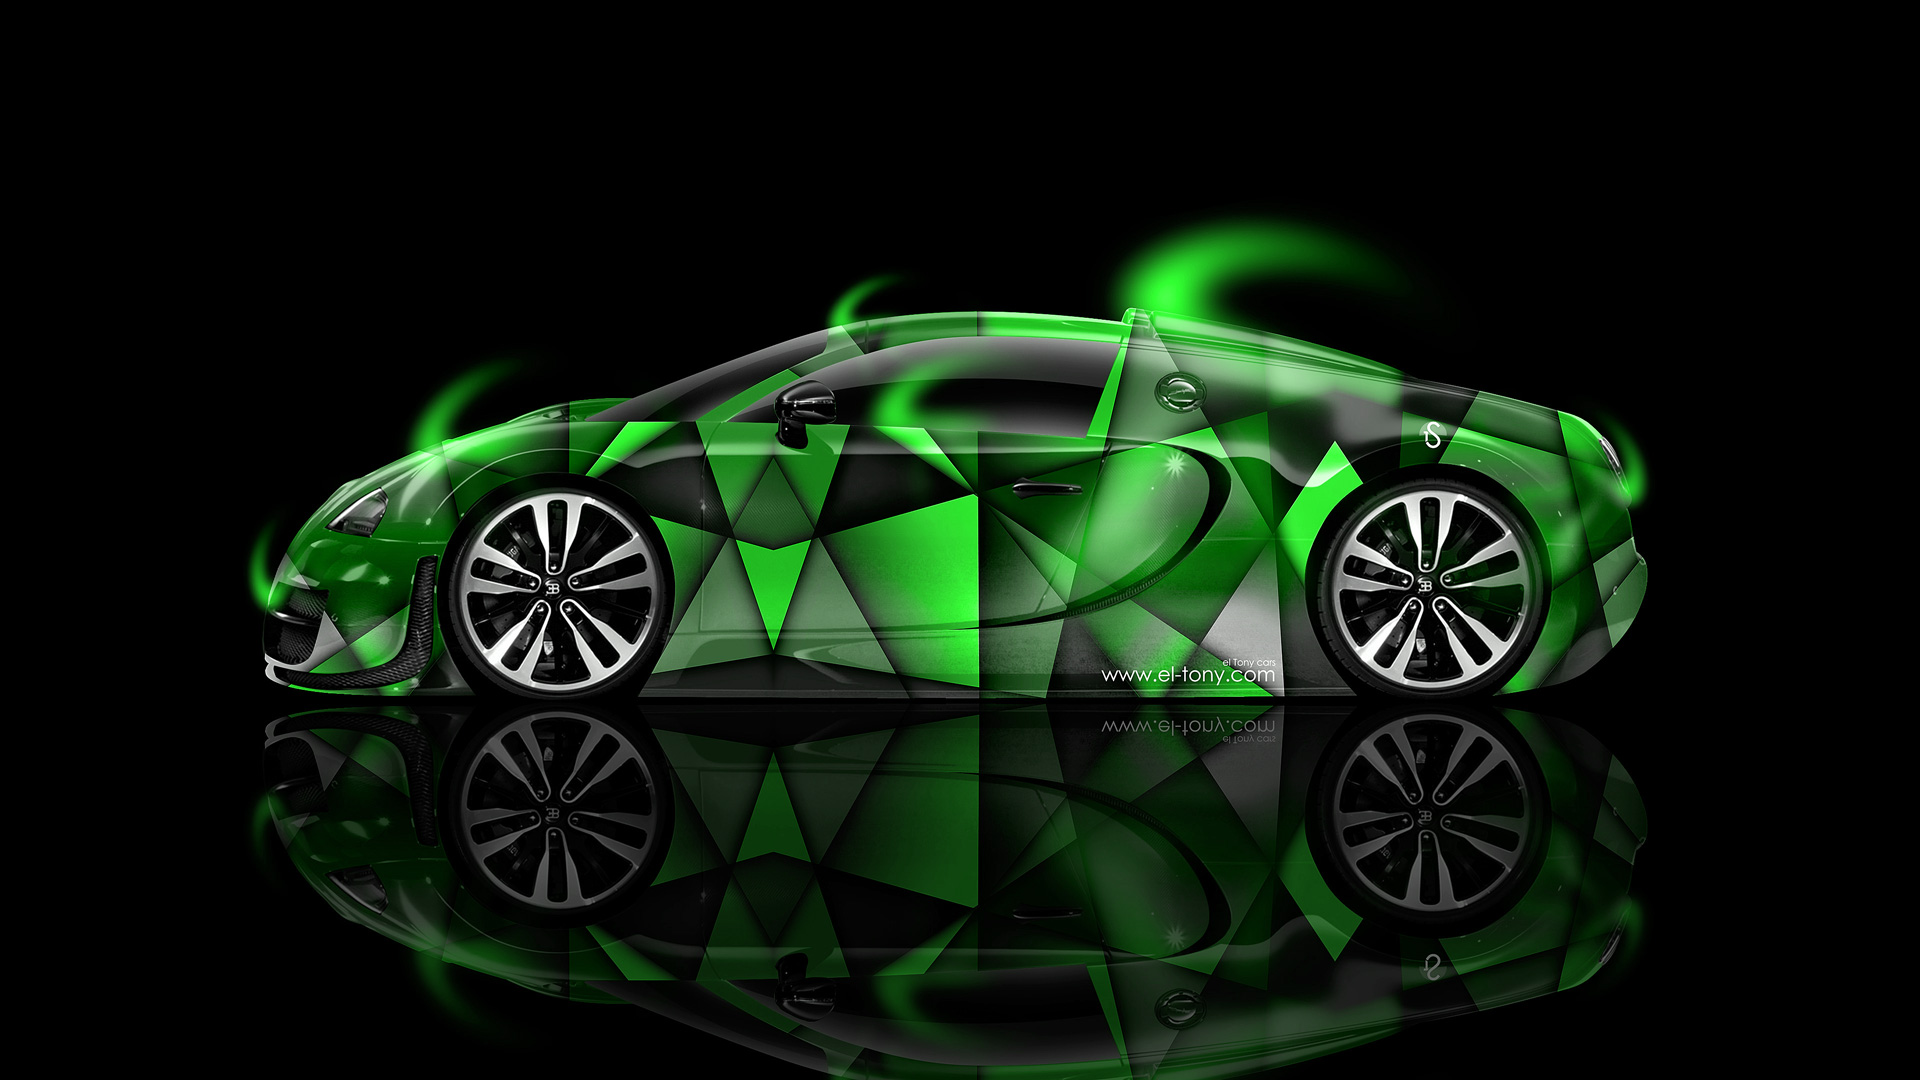 Bmw m6 hamann tuning side green fire abstract car 2015 hd wallpapers - Bugatti Veyron Side Aerography Car 2014 Green Colors Hd Wallpapers